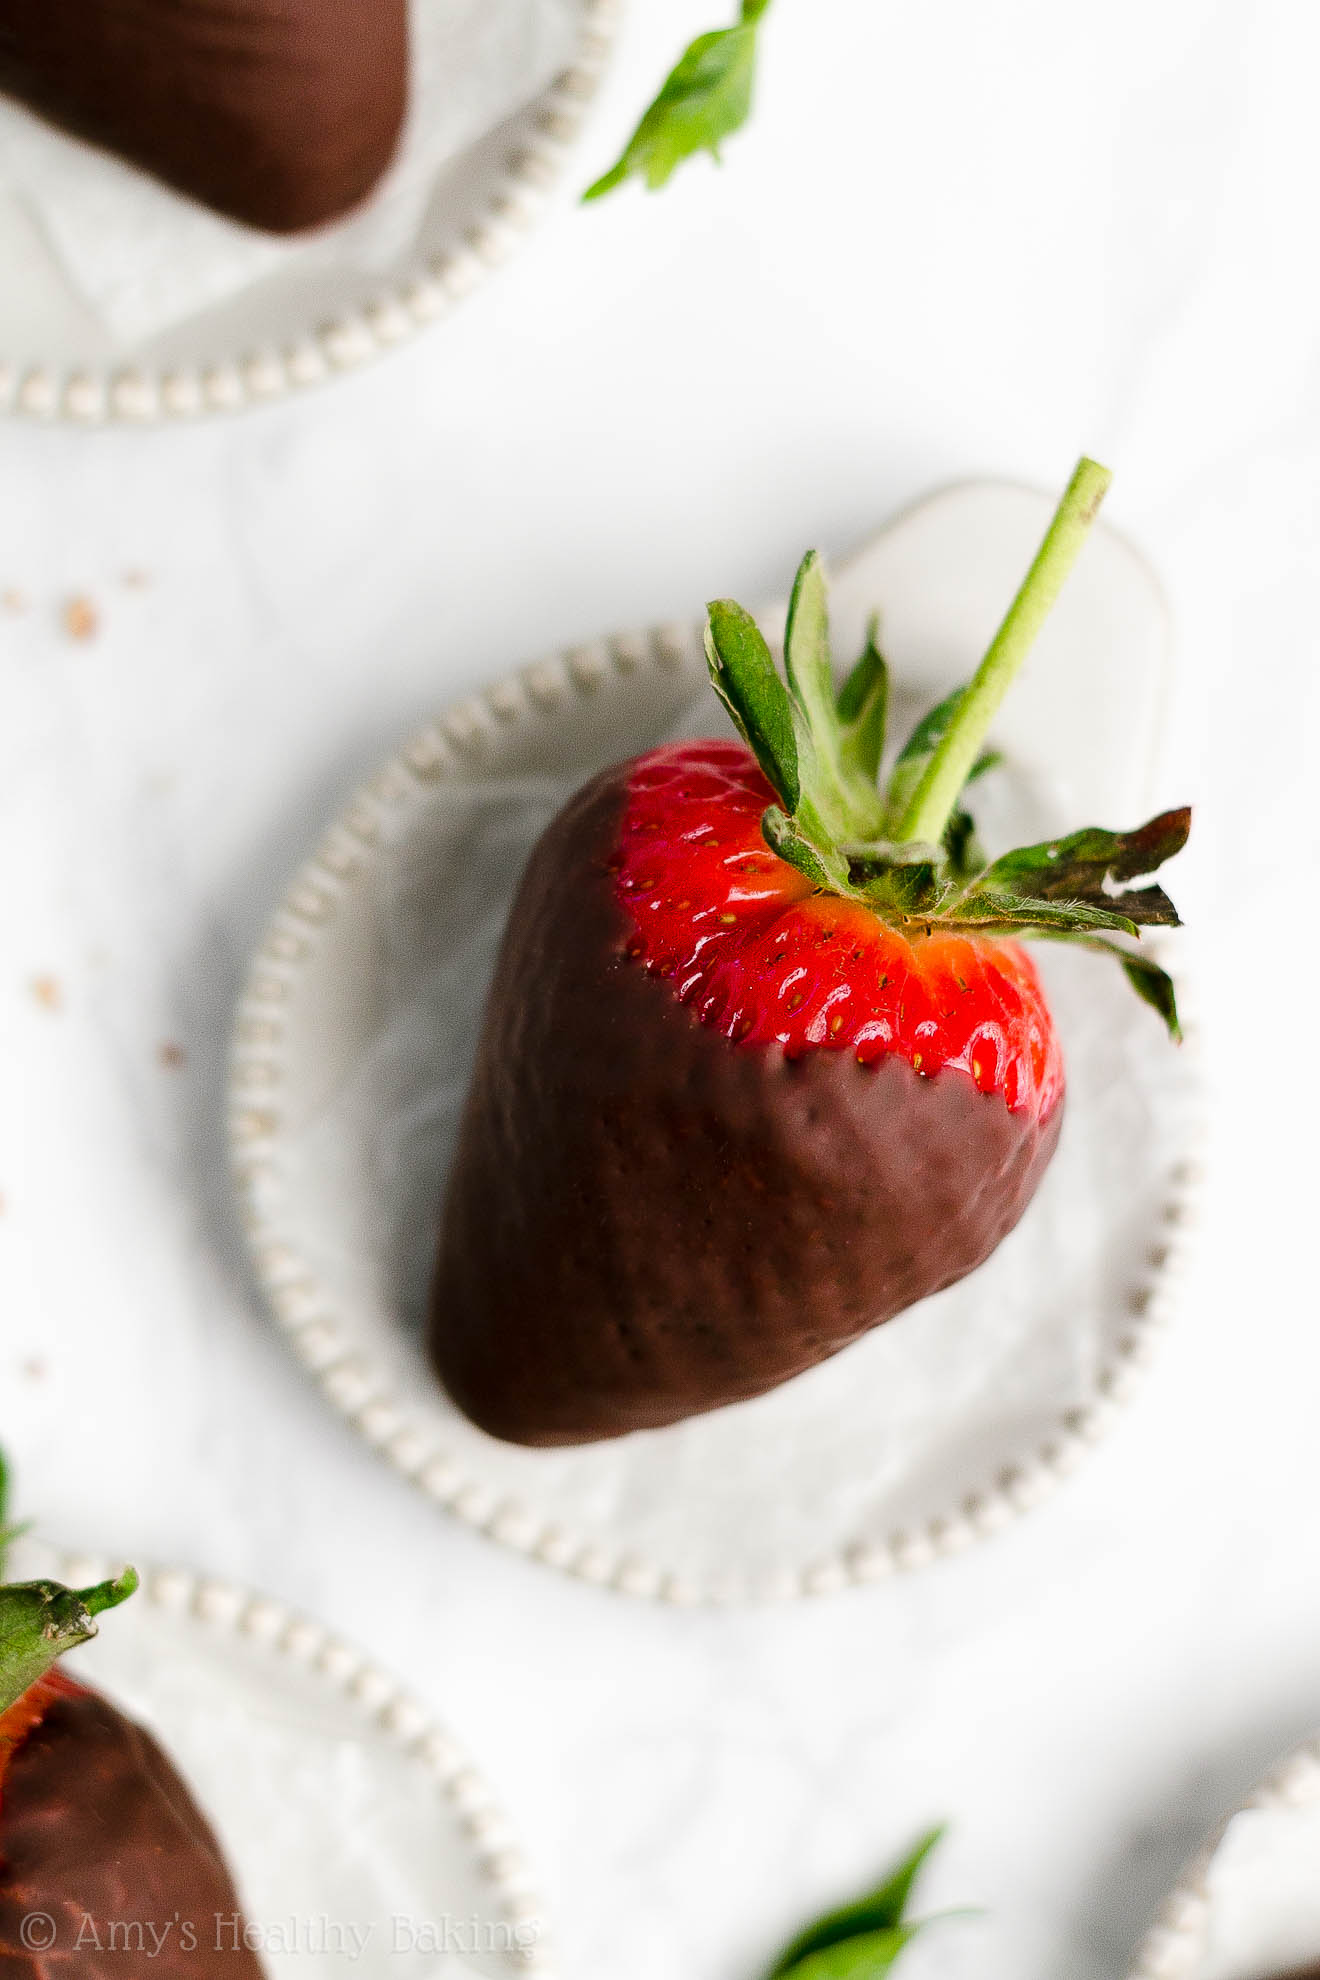 Perfect, BEST EVER Low Calorie Dairy Free Healthy Chocolate Covered Strawberries